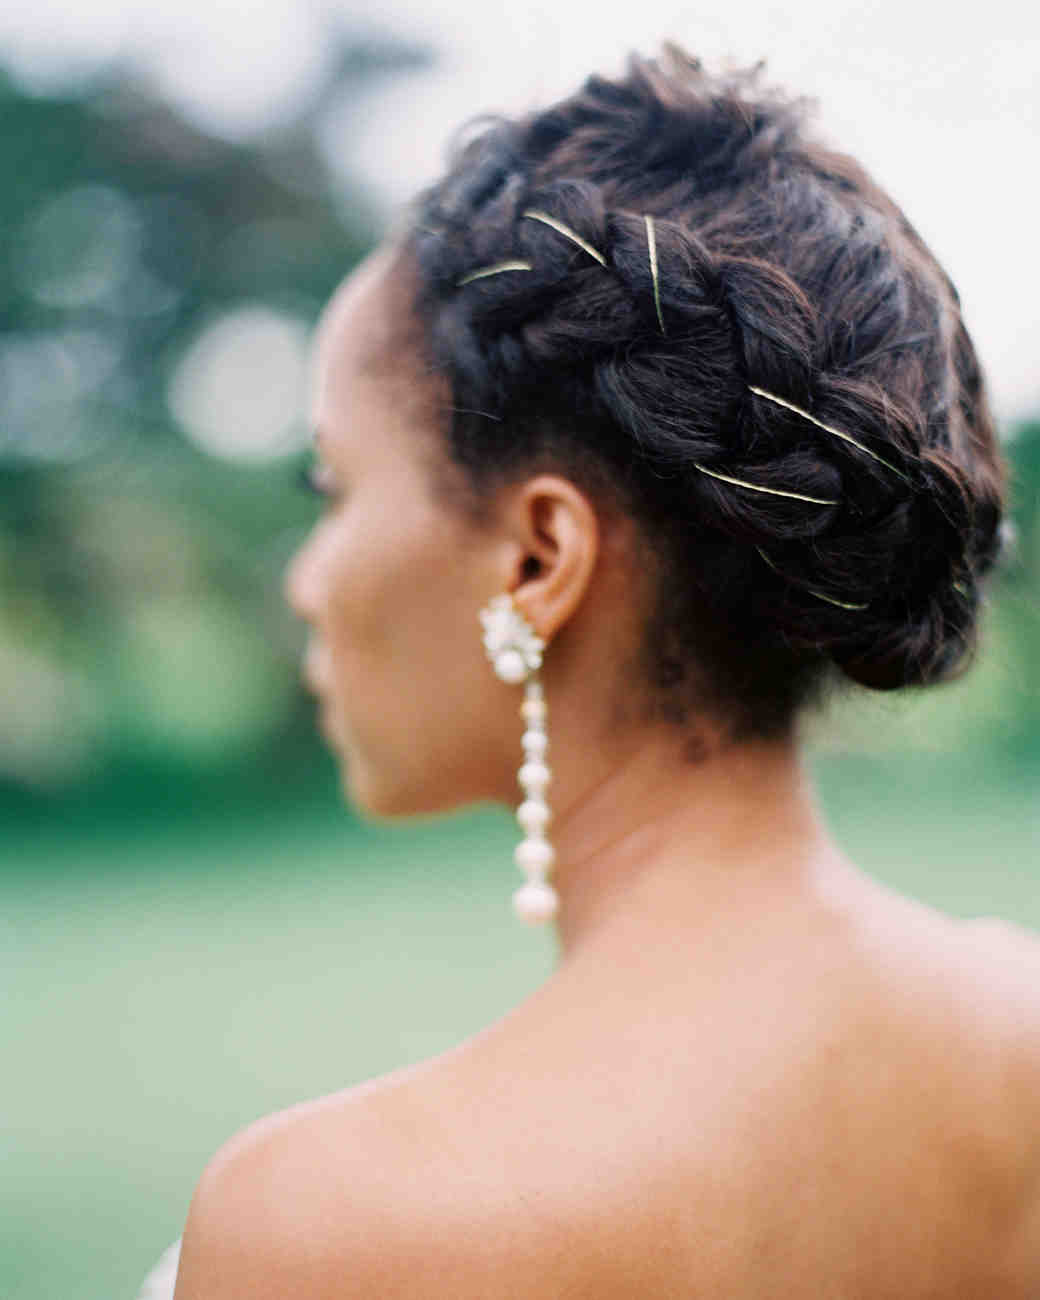 Wedding Hairstyle With Braids: 25 Braided Wedding Hairstyles We Love